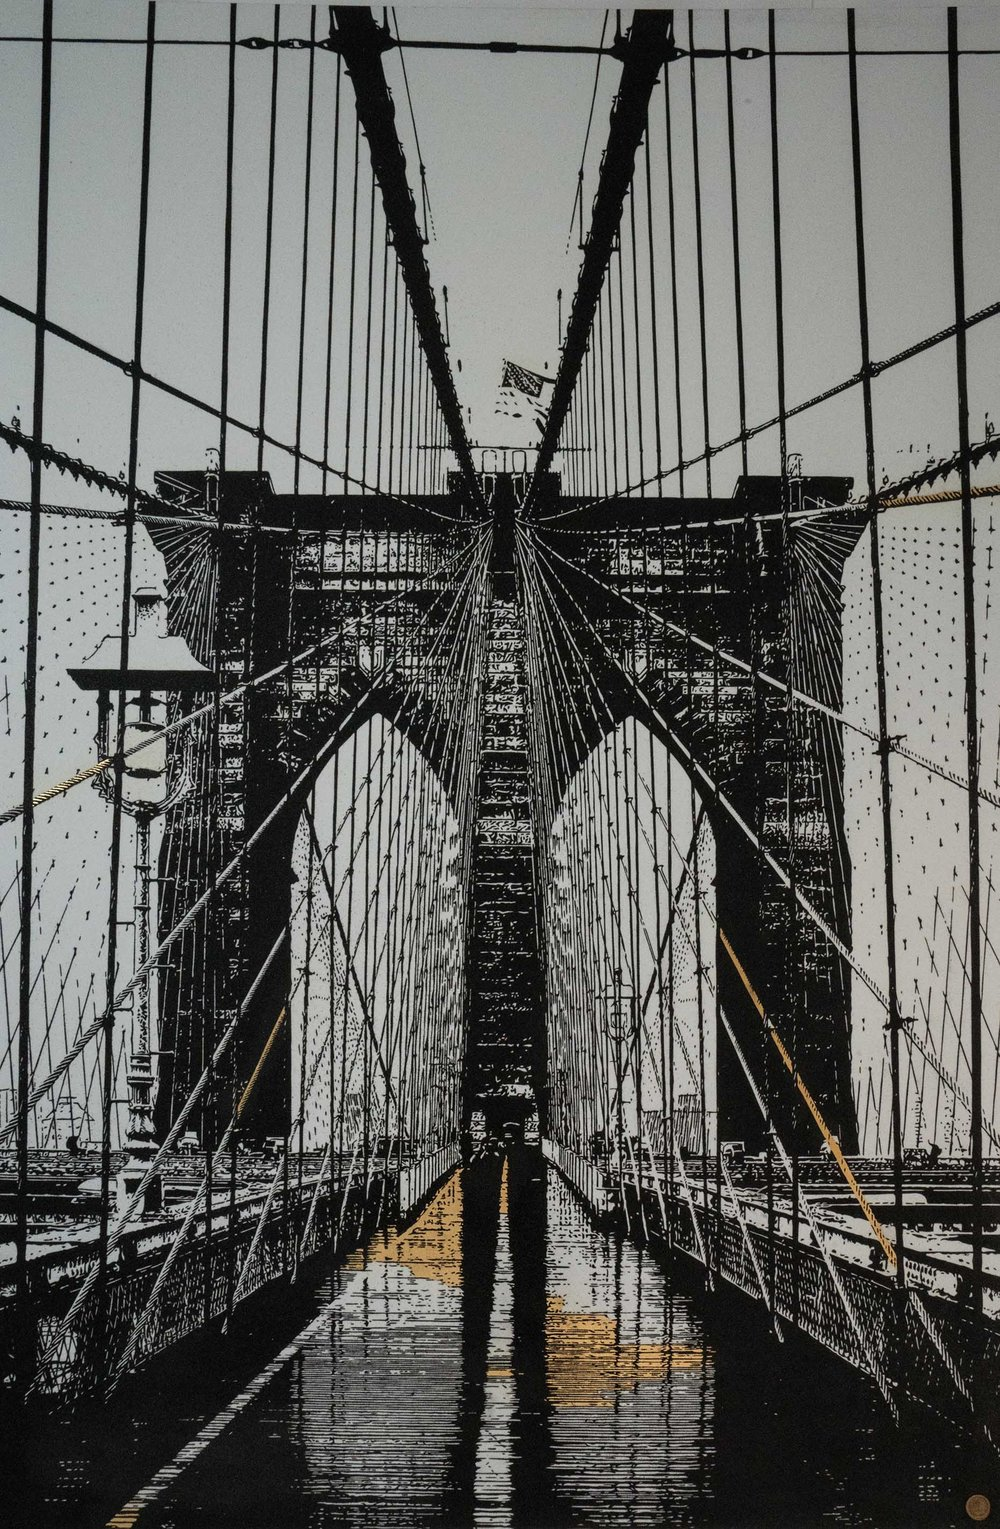 Brooklyn Bridge, 2017 White Sand, Black Sand, Gold Adhesive, Varnish on Aluminium Panel 79.53h x 53.15w in Part of the US Bridges Series 1/3